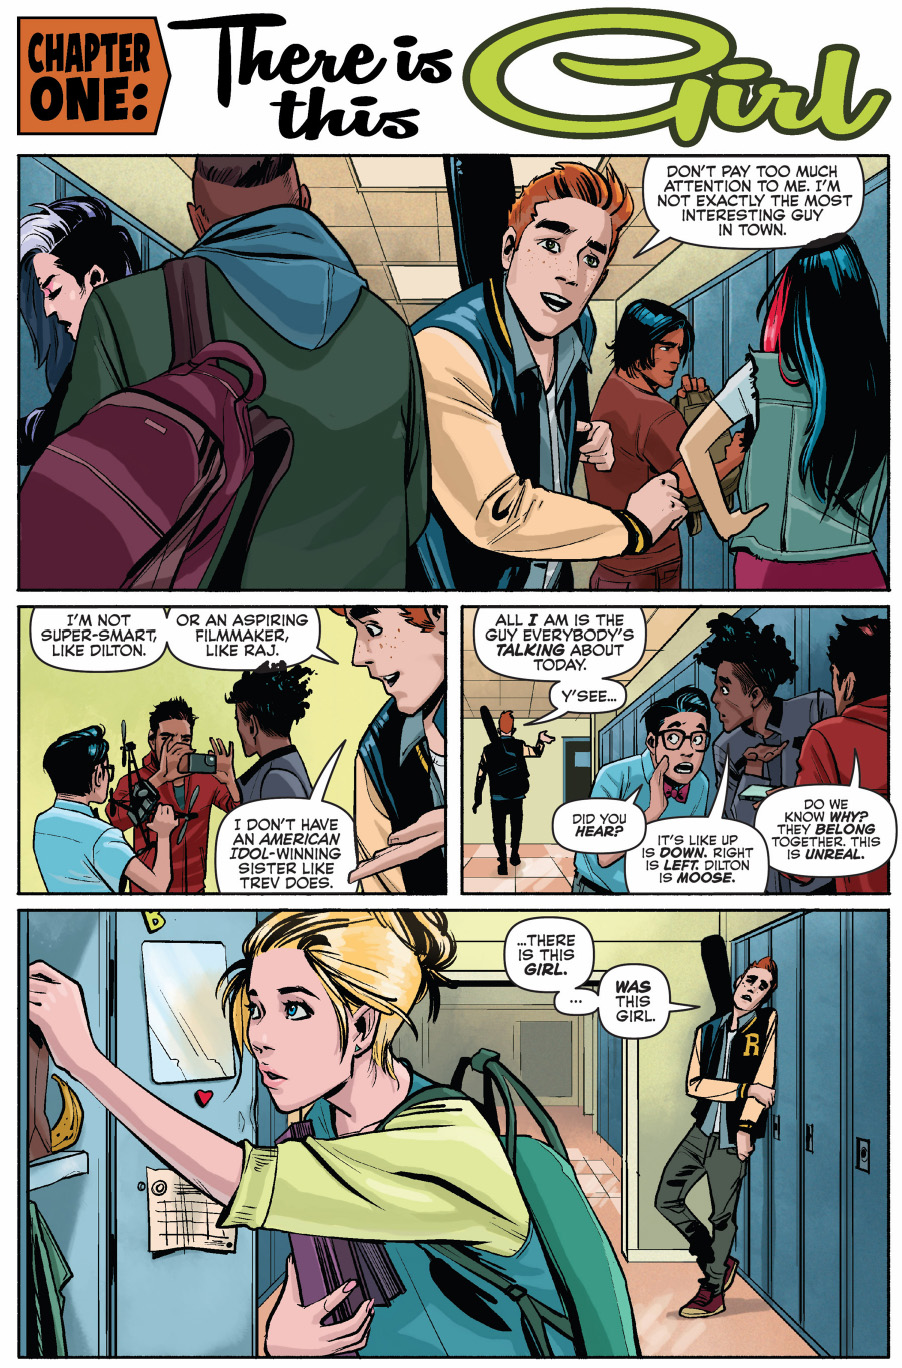 archie and betty break up